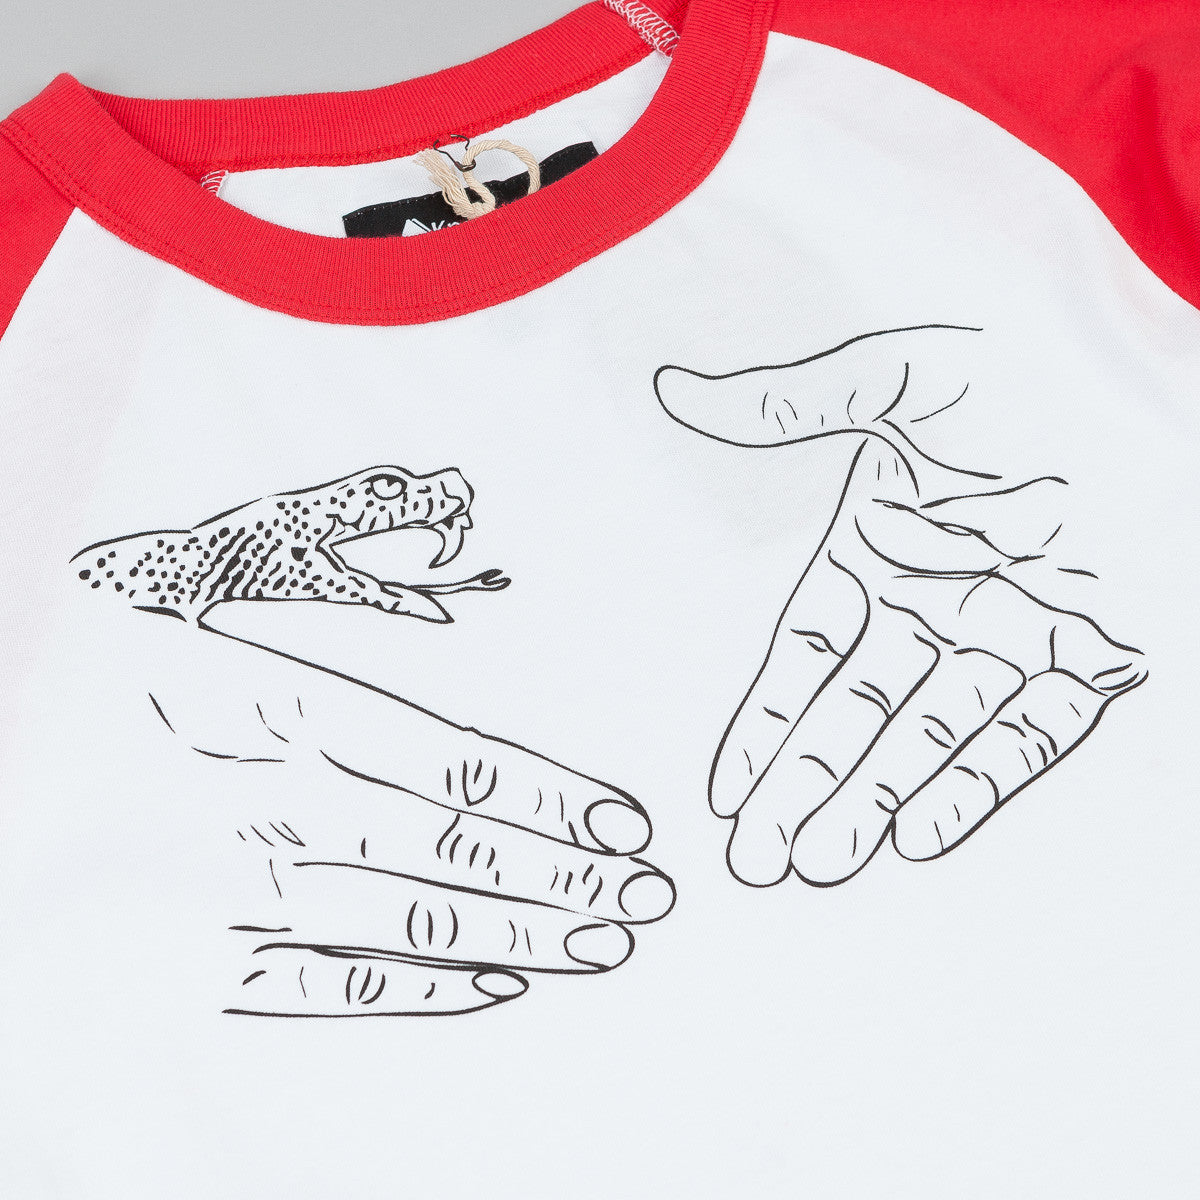 Doom Sayers X Know1edge Snake Shake 3/4 Sleeve Raglan T-Shirt - White / Red